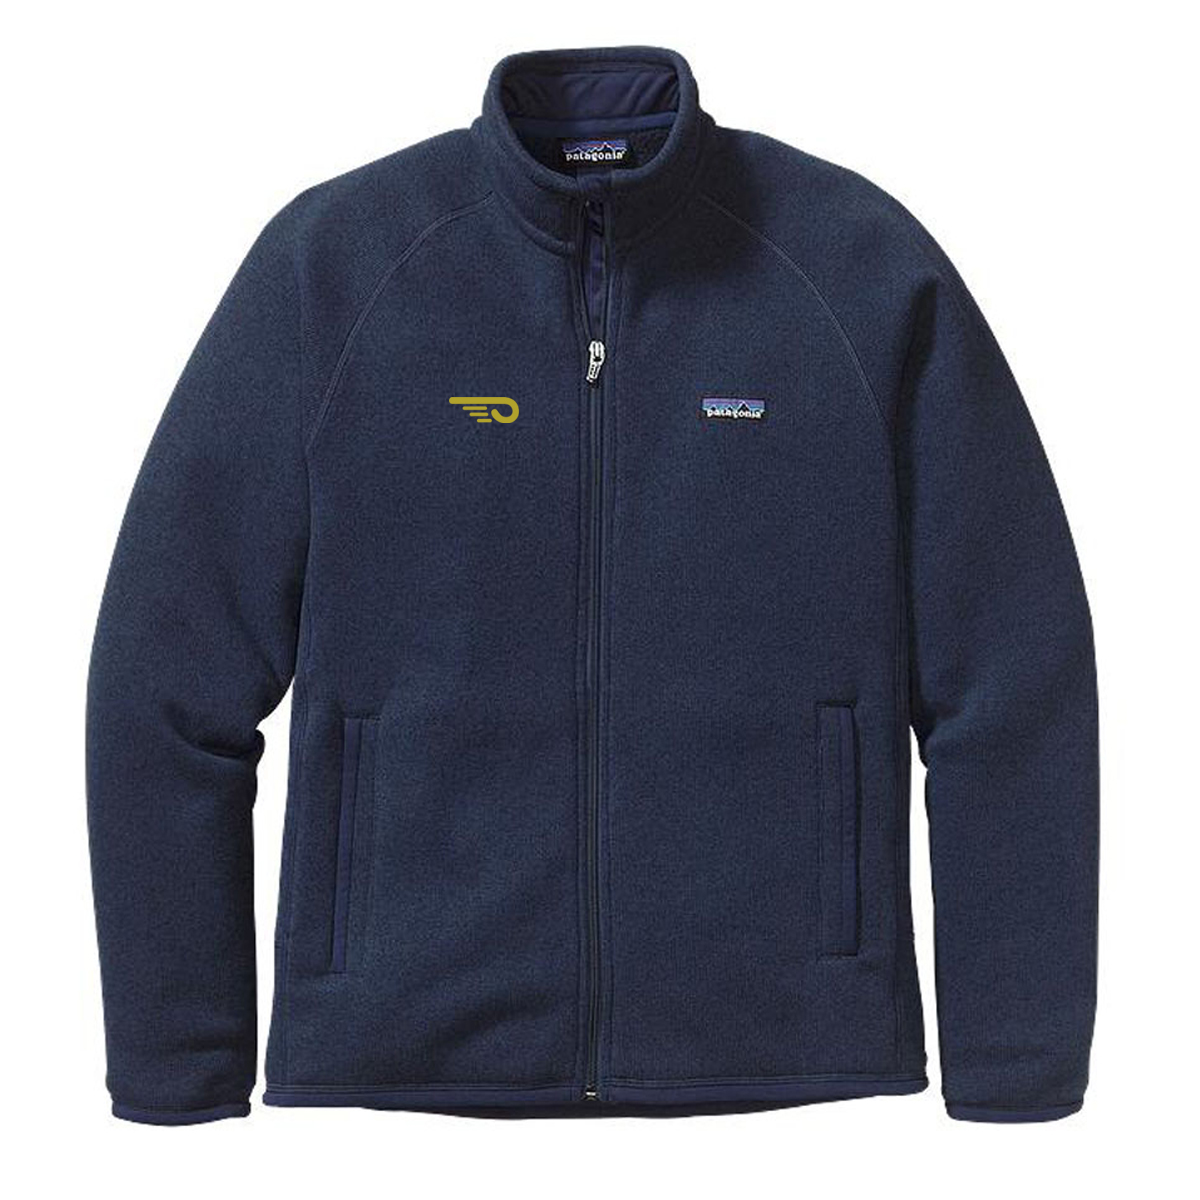 Hinckley Yachts- M's Patagonia Better Sweater Jacket